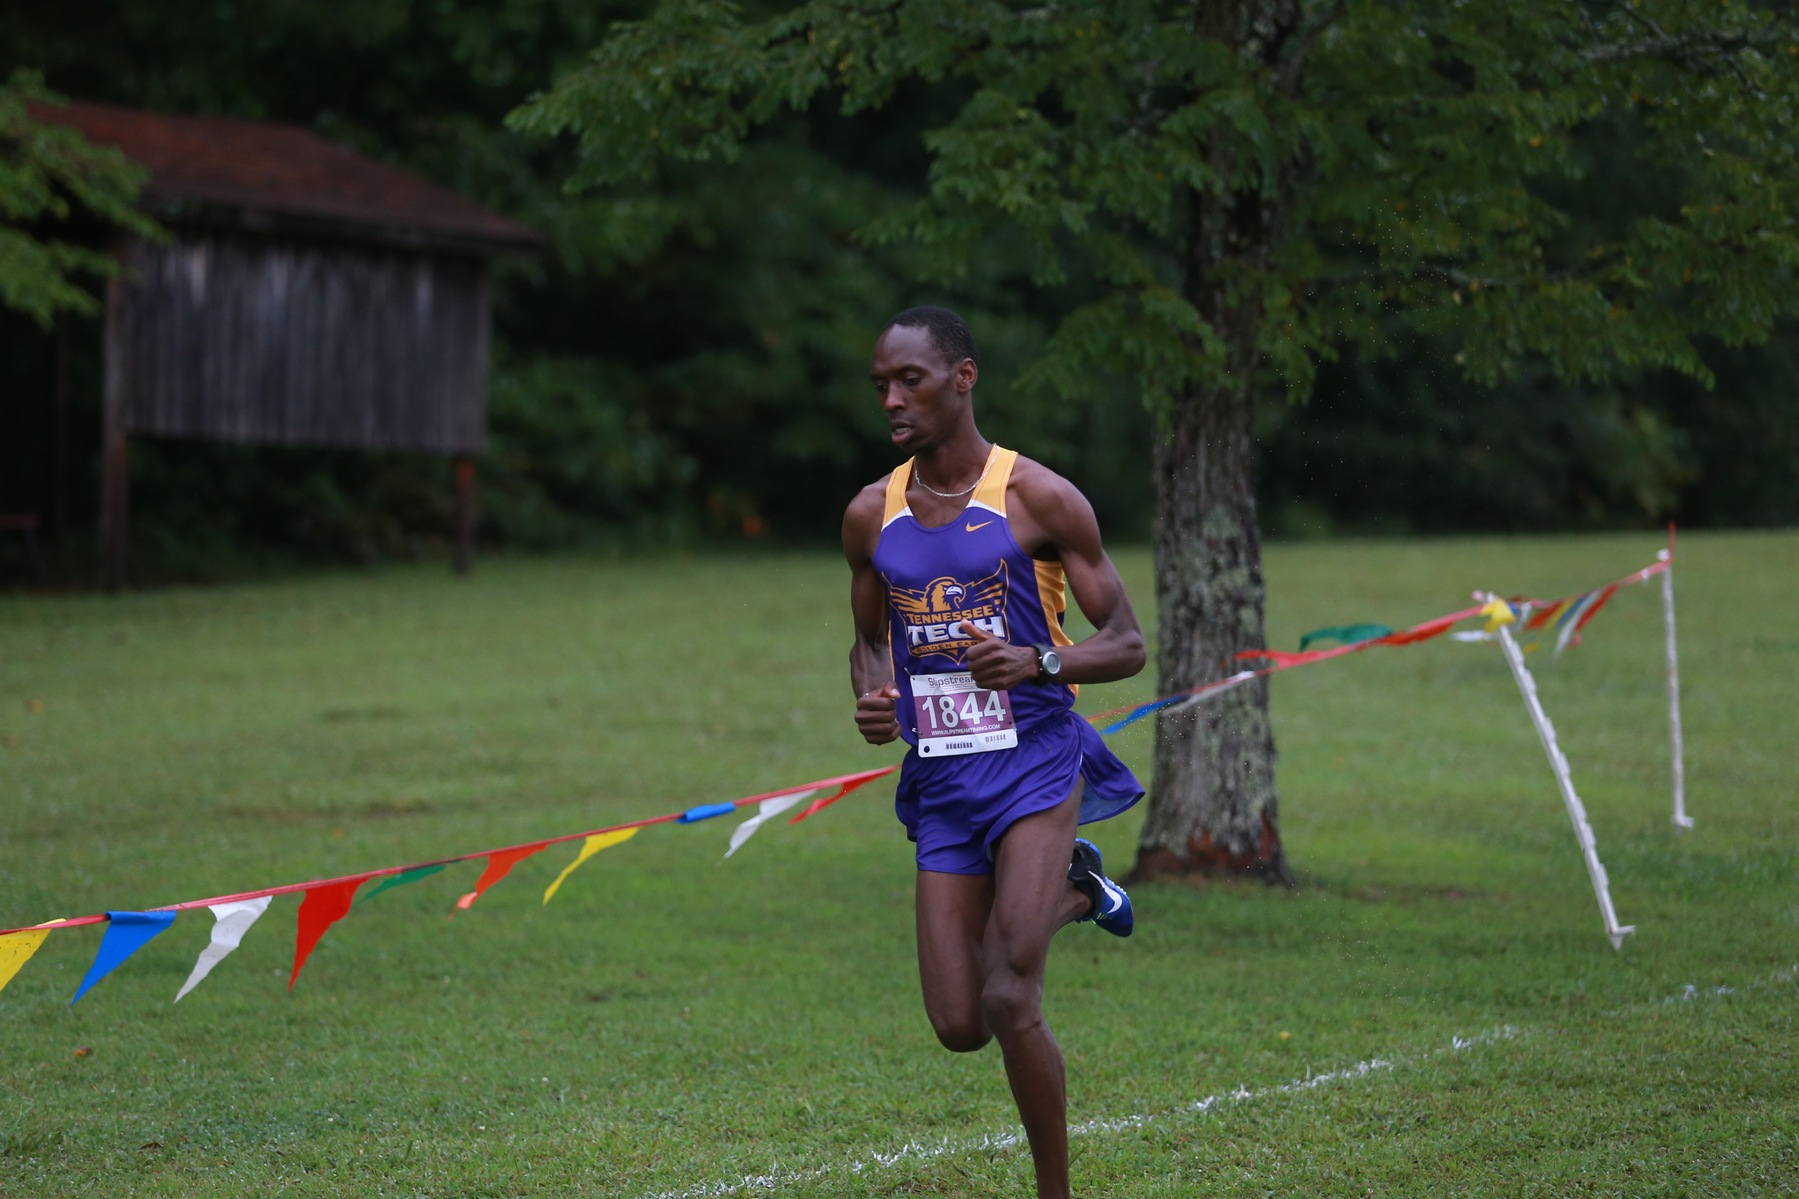 Boit earns second OVC Male Runner of the Week honor of 2017